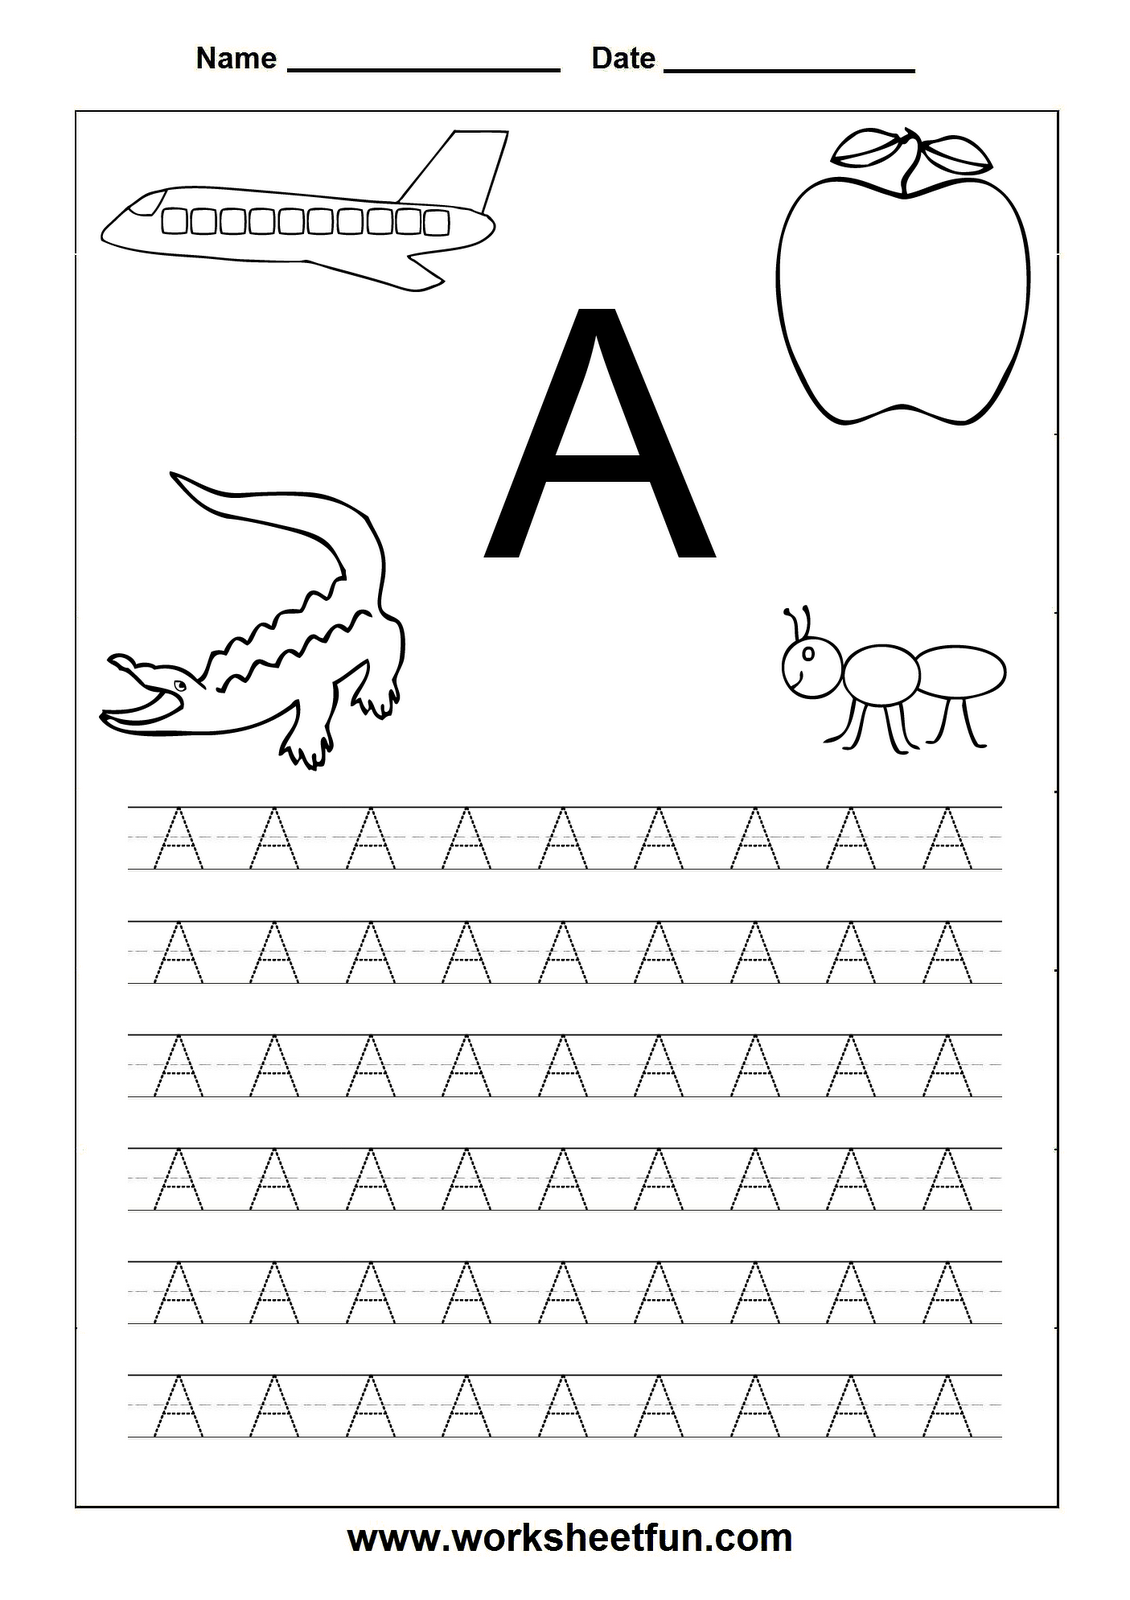 AZ Capital Letter Tracing Worksheets there are PLENTY more – A Worksheet